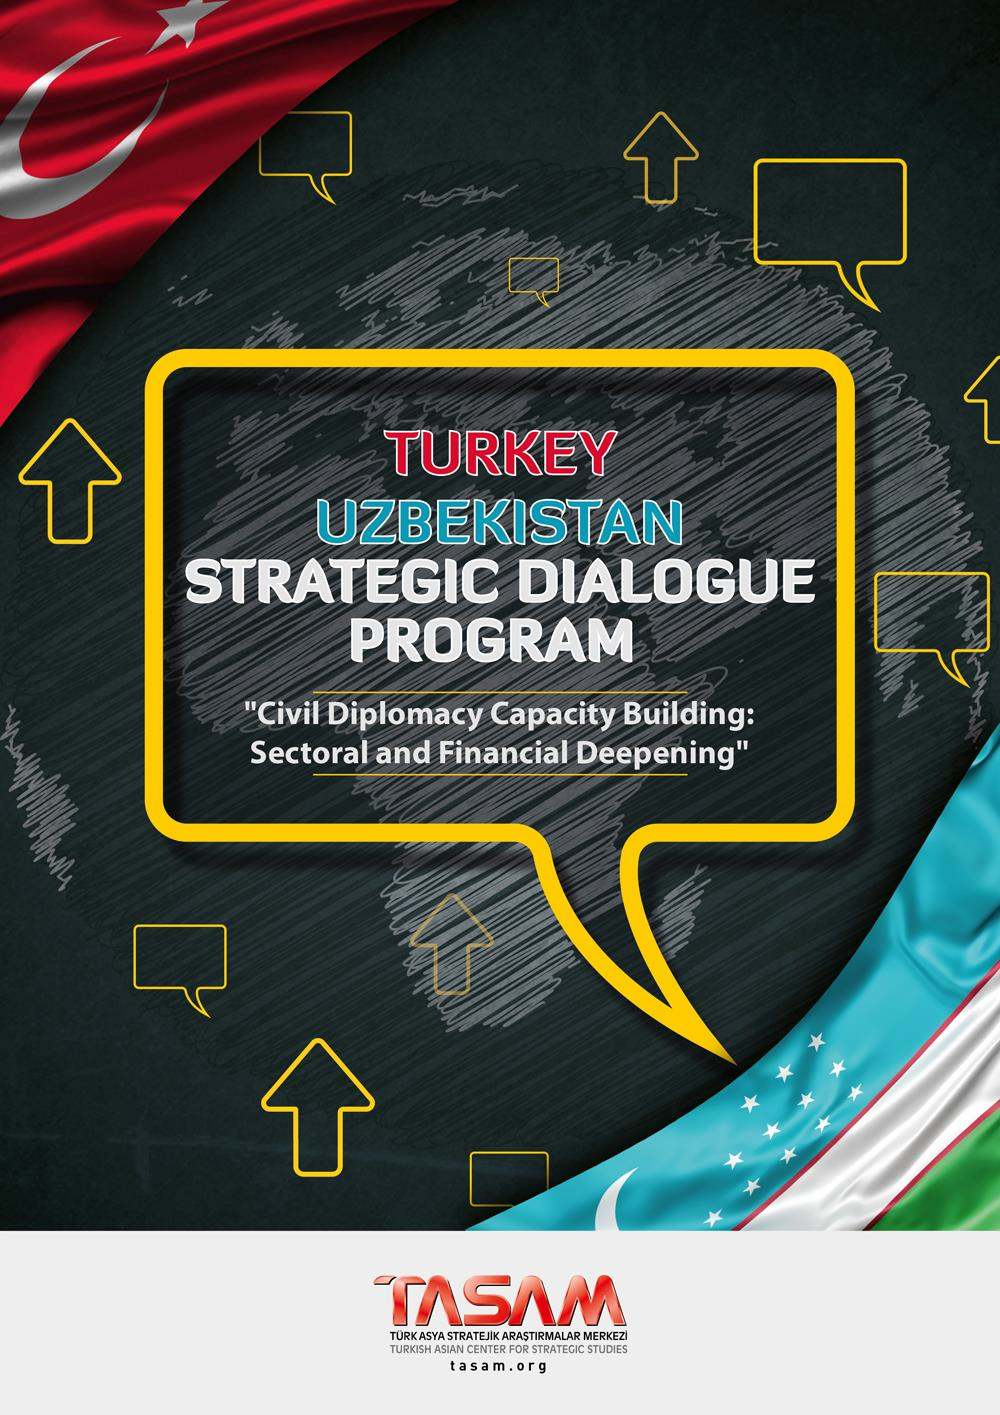 Turkey - Uzbekistan Strategic Dialogue Program